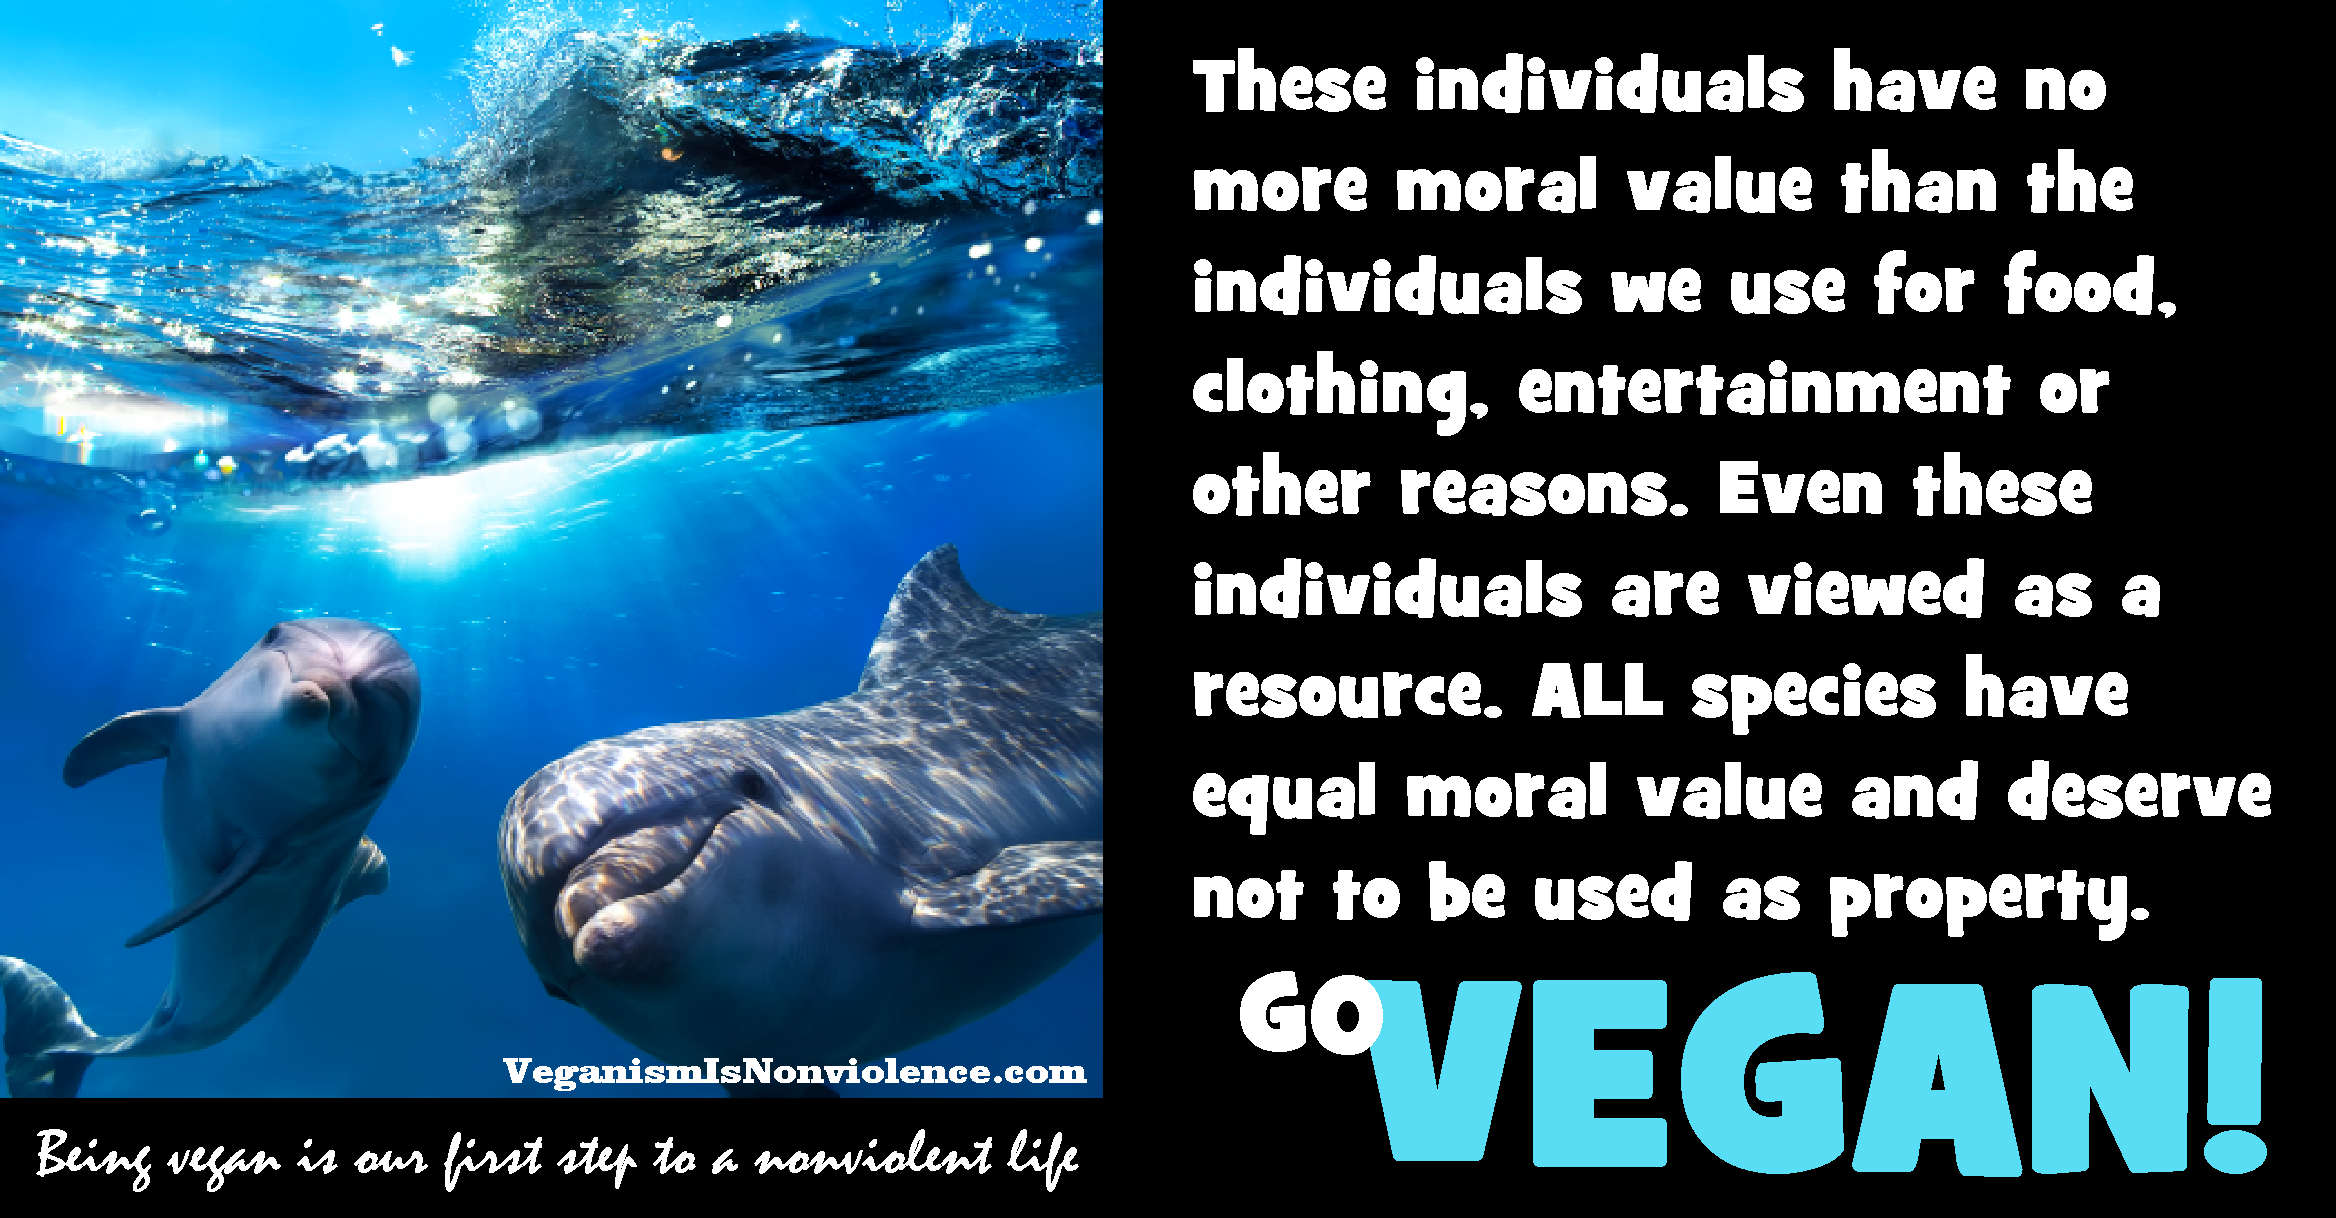 animals including human animals have equal moral value. All animals ...